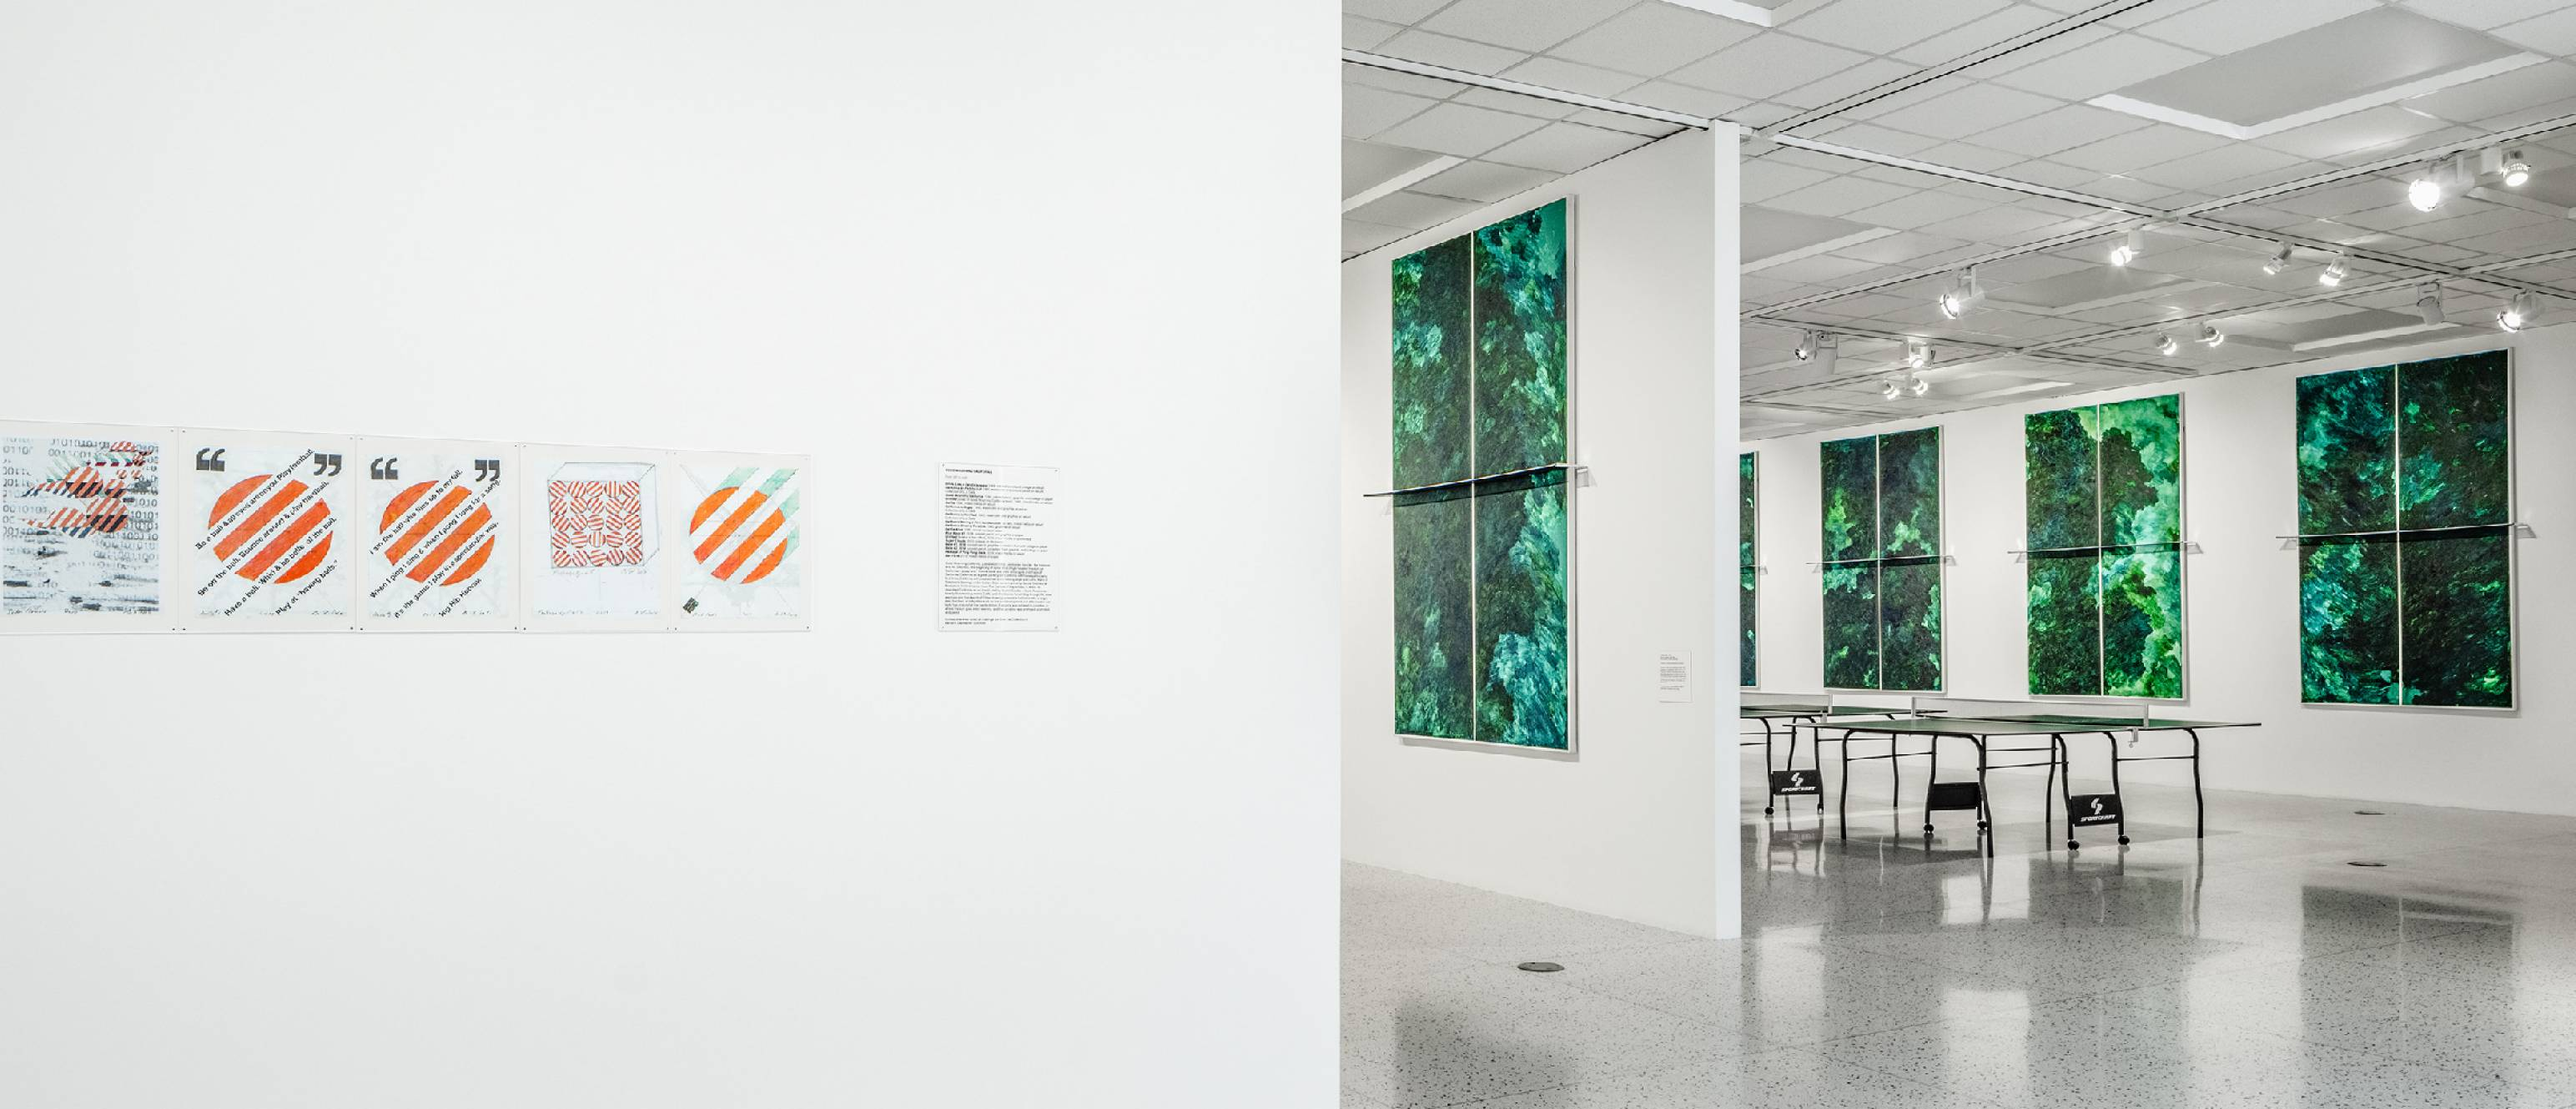 Drawings and painted ping pong tables on the walls of the gallery